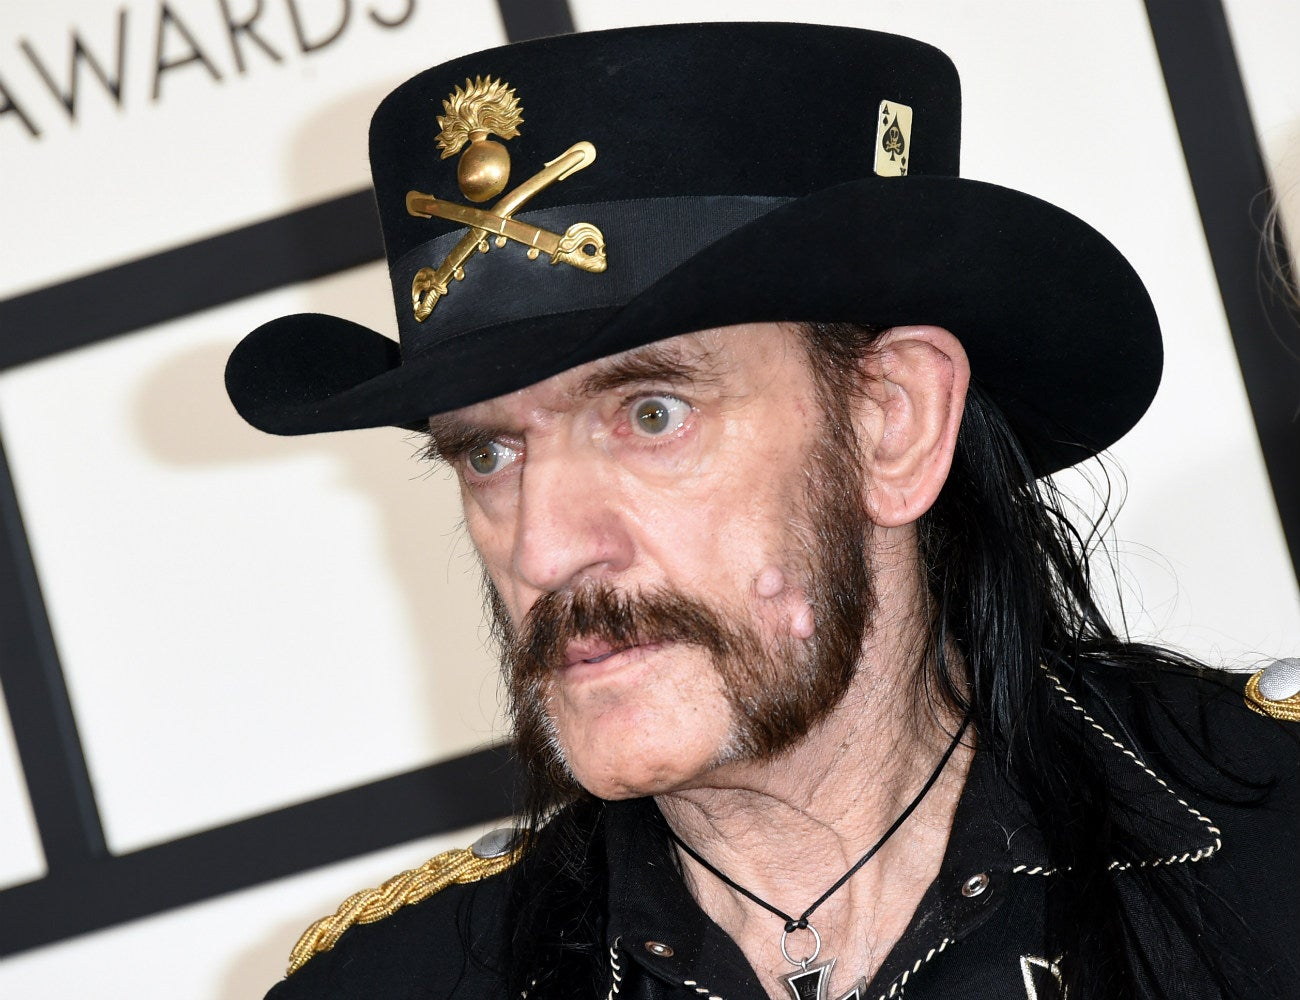 Lemmy Kilmister - latest news, breaking stories and comment